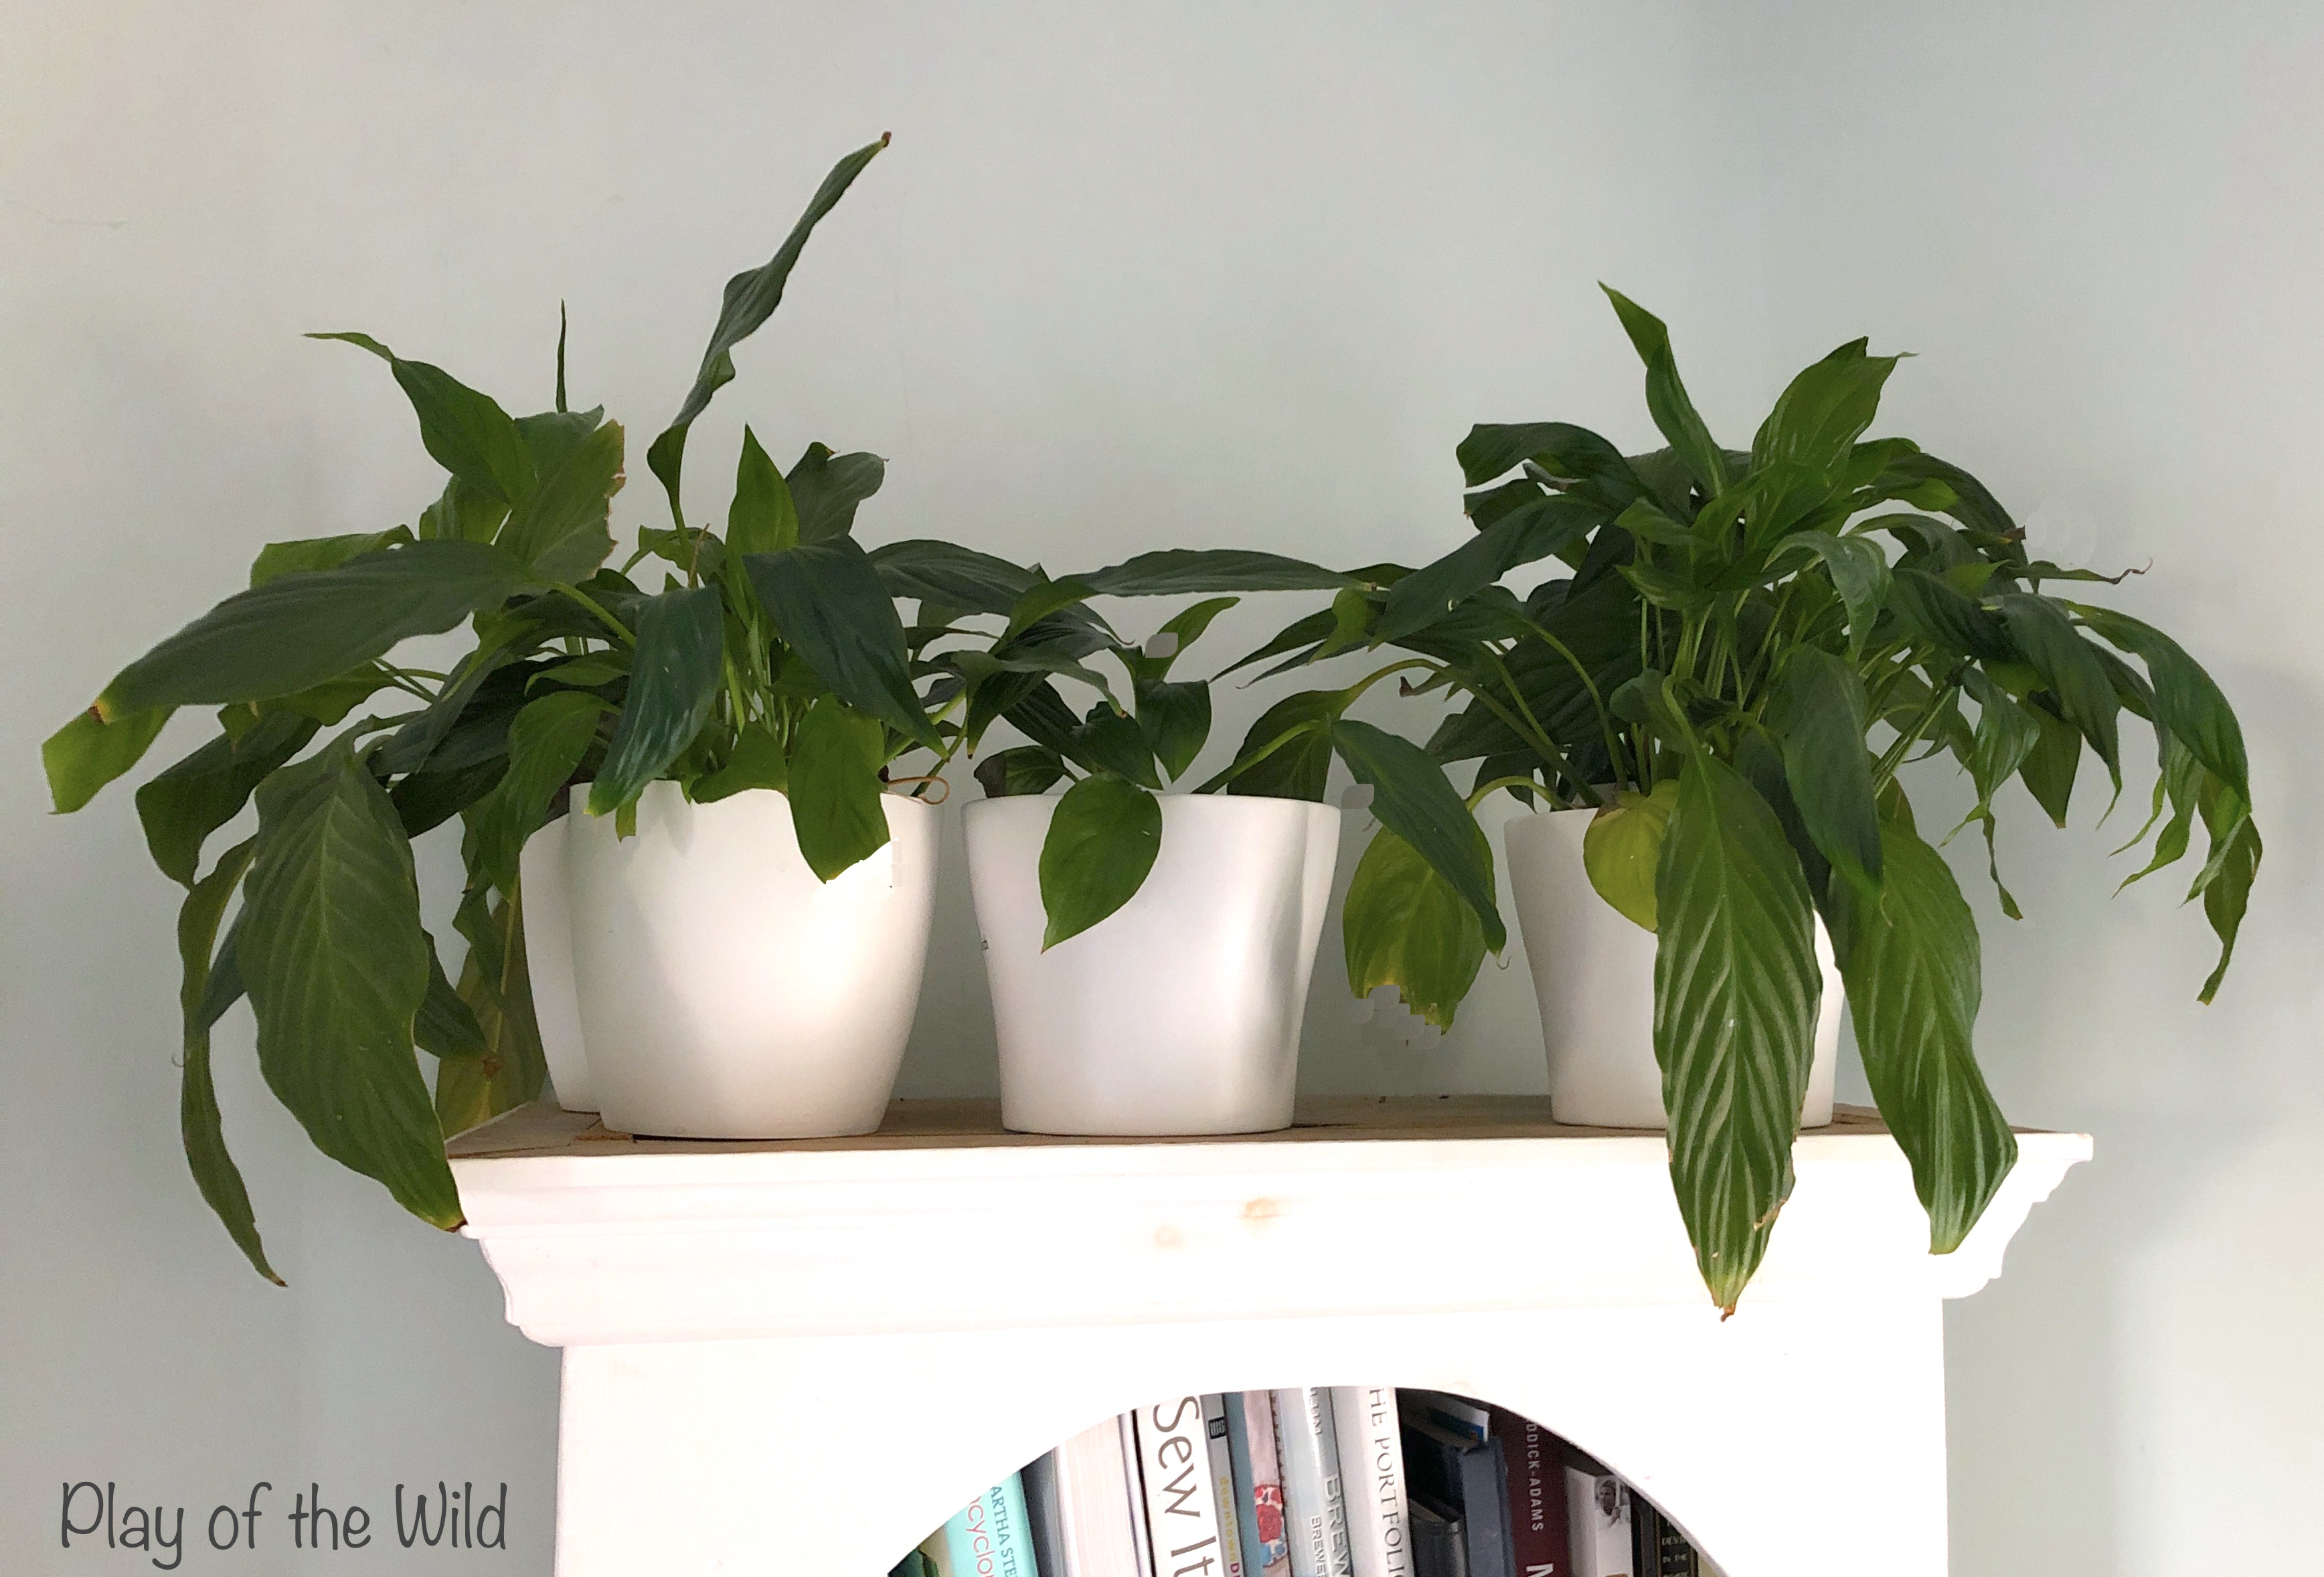 Peace lilies to purify